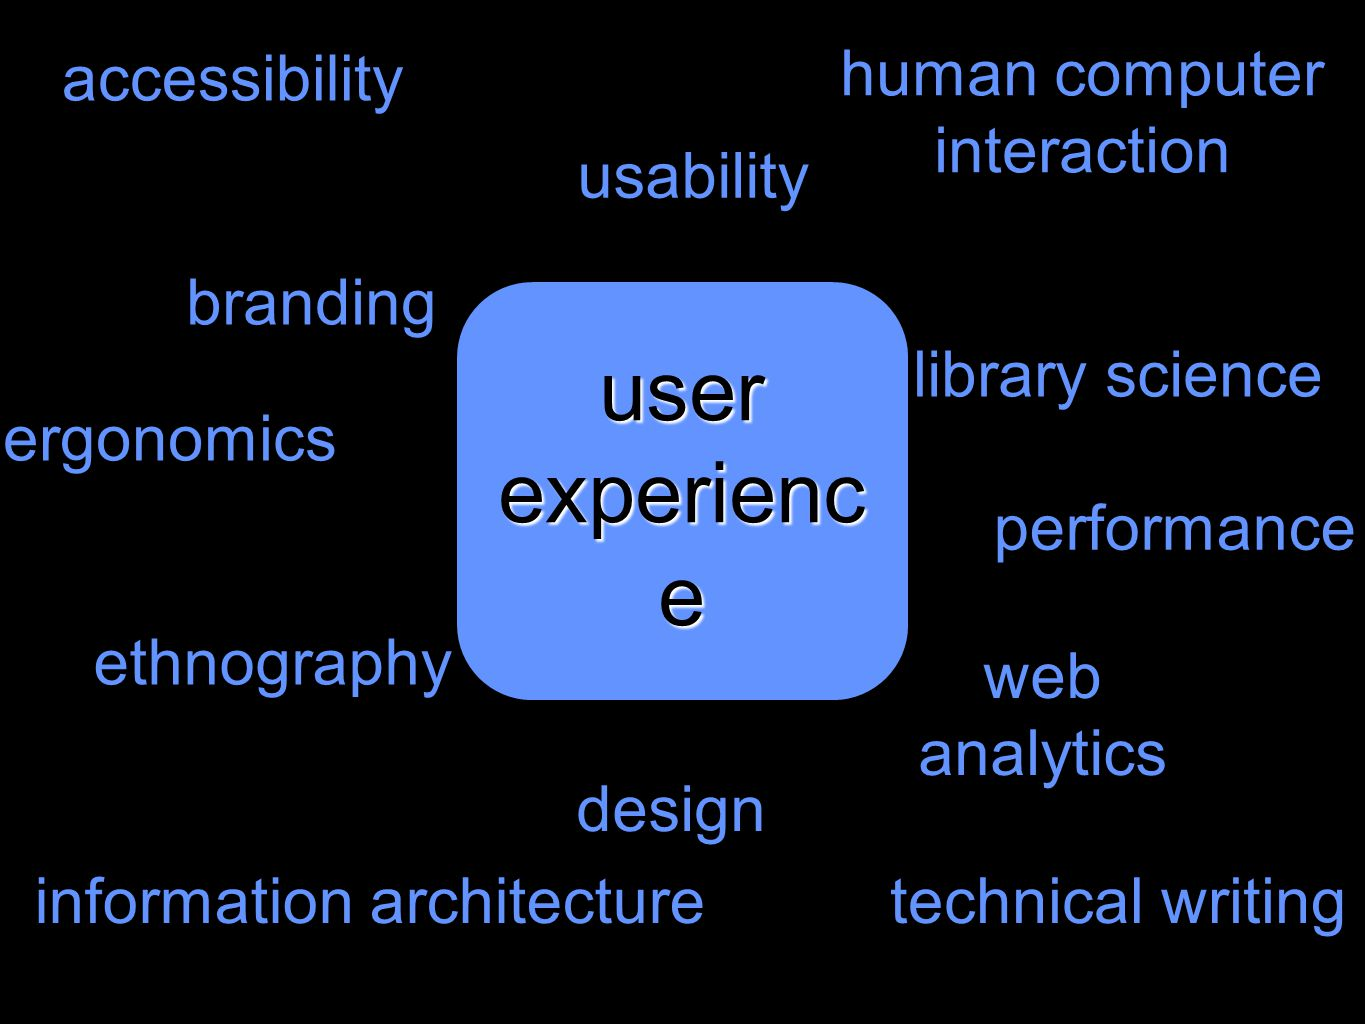 user experience accessibility human computer interaction usability